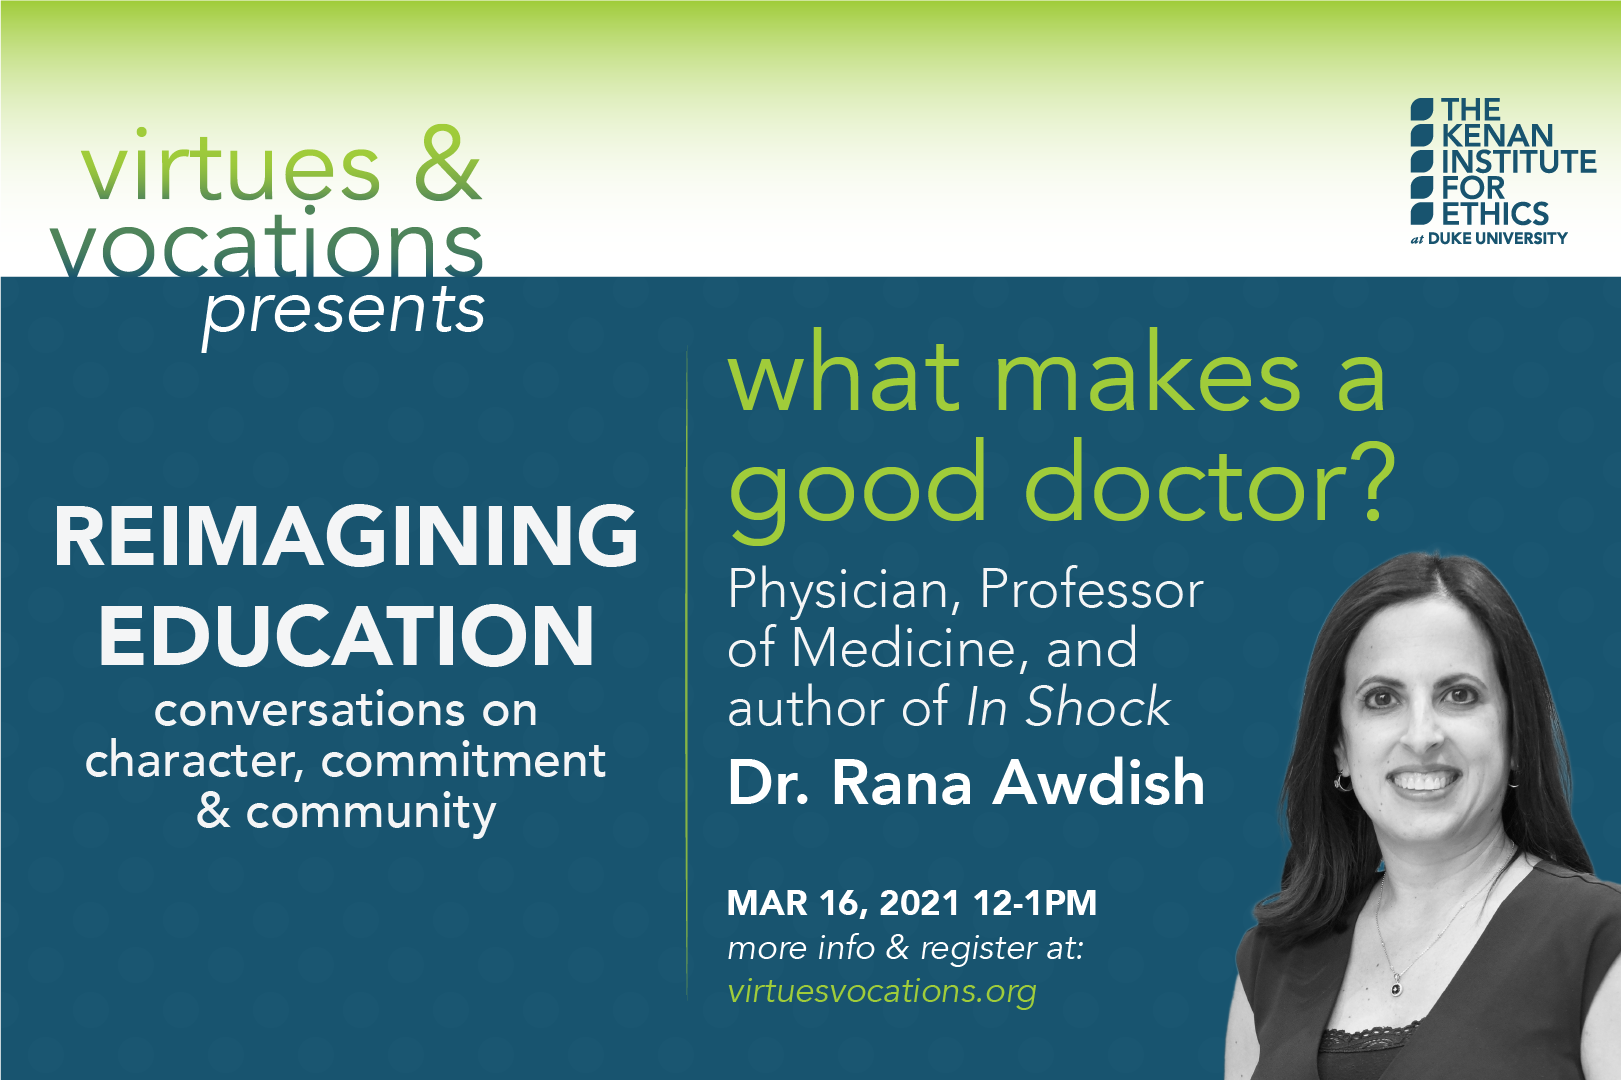 Virtues & Vocations Presents Dr. Rana Awdish: What makes a good doctor?